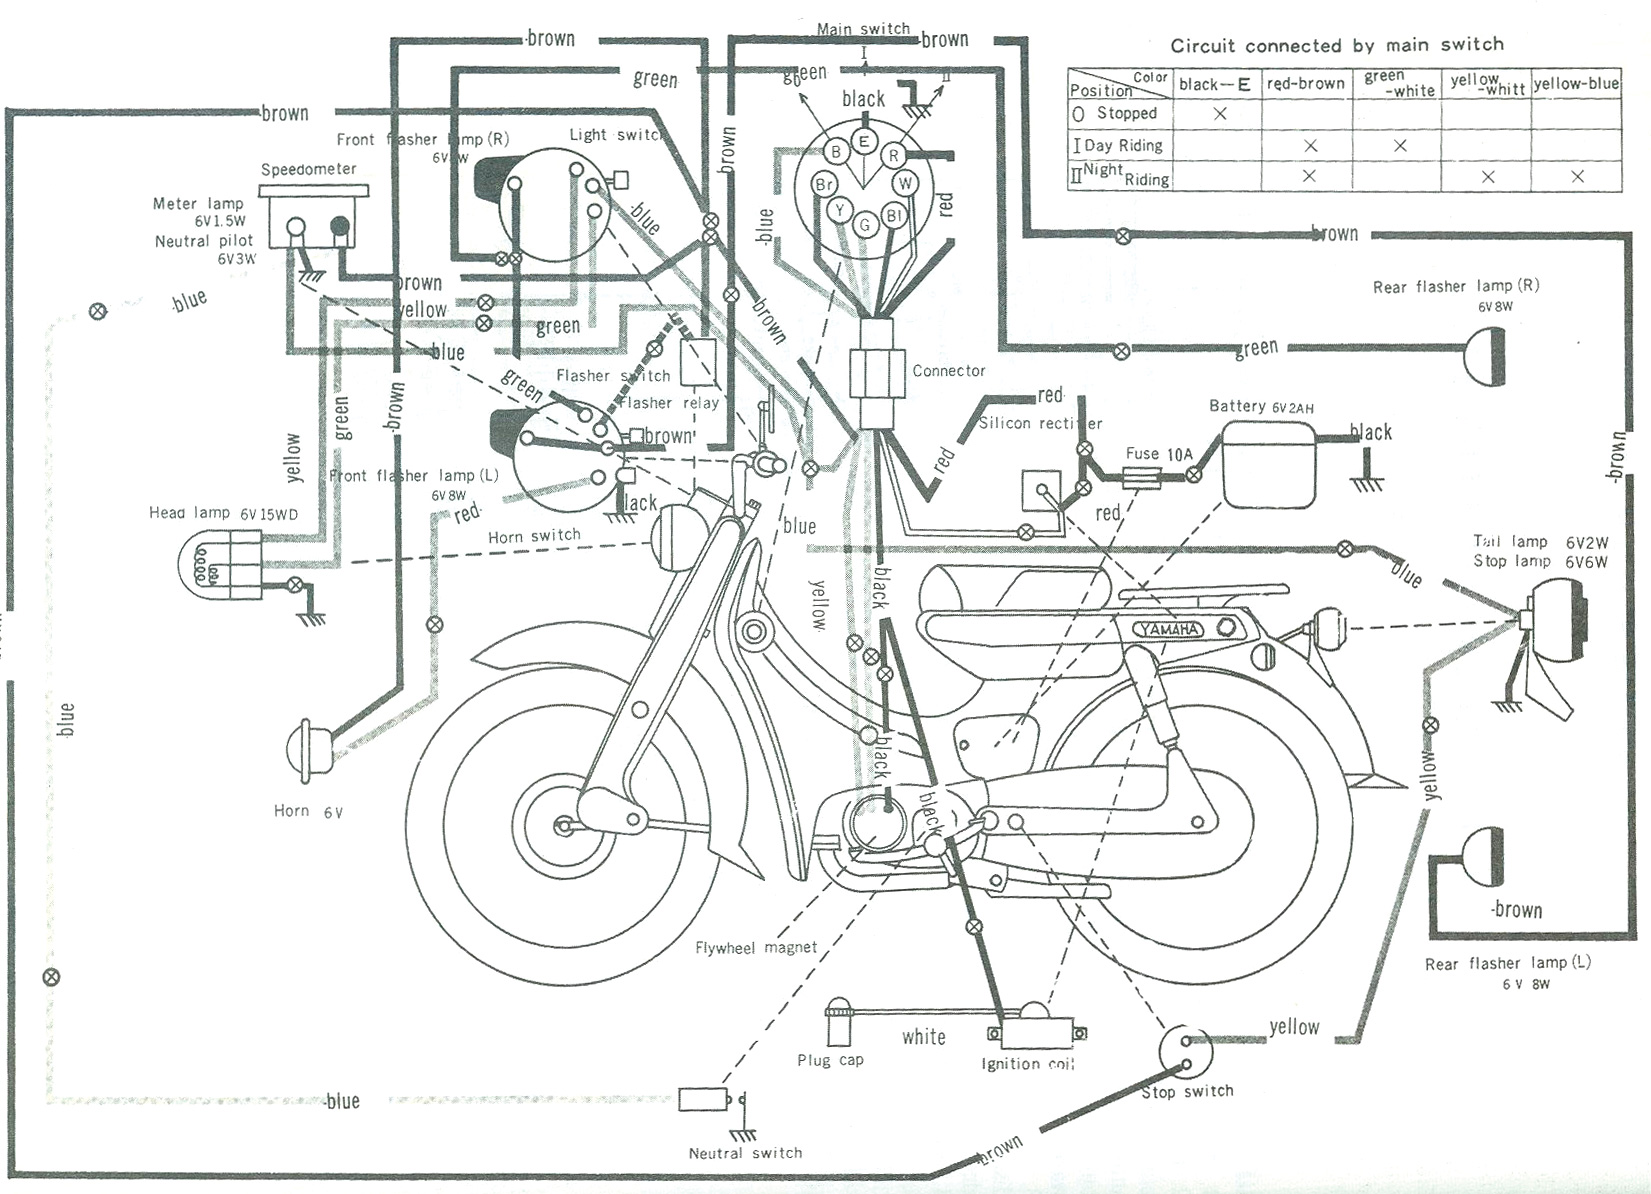 1975 bmw 2002 wiring diagram vw transporter t5 electrical yamaha u5e motorcycle schematics